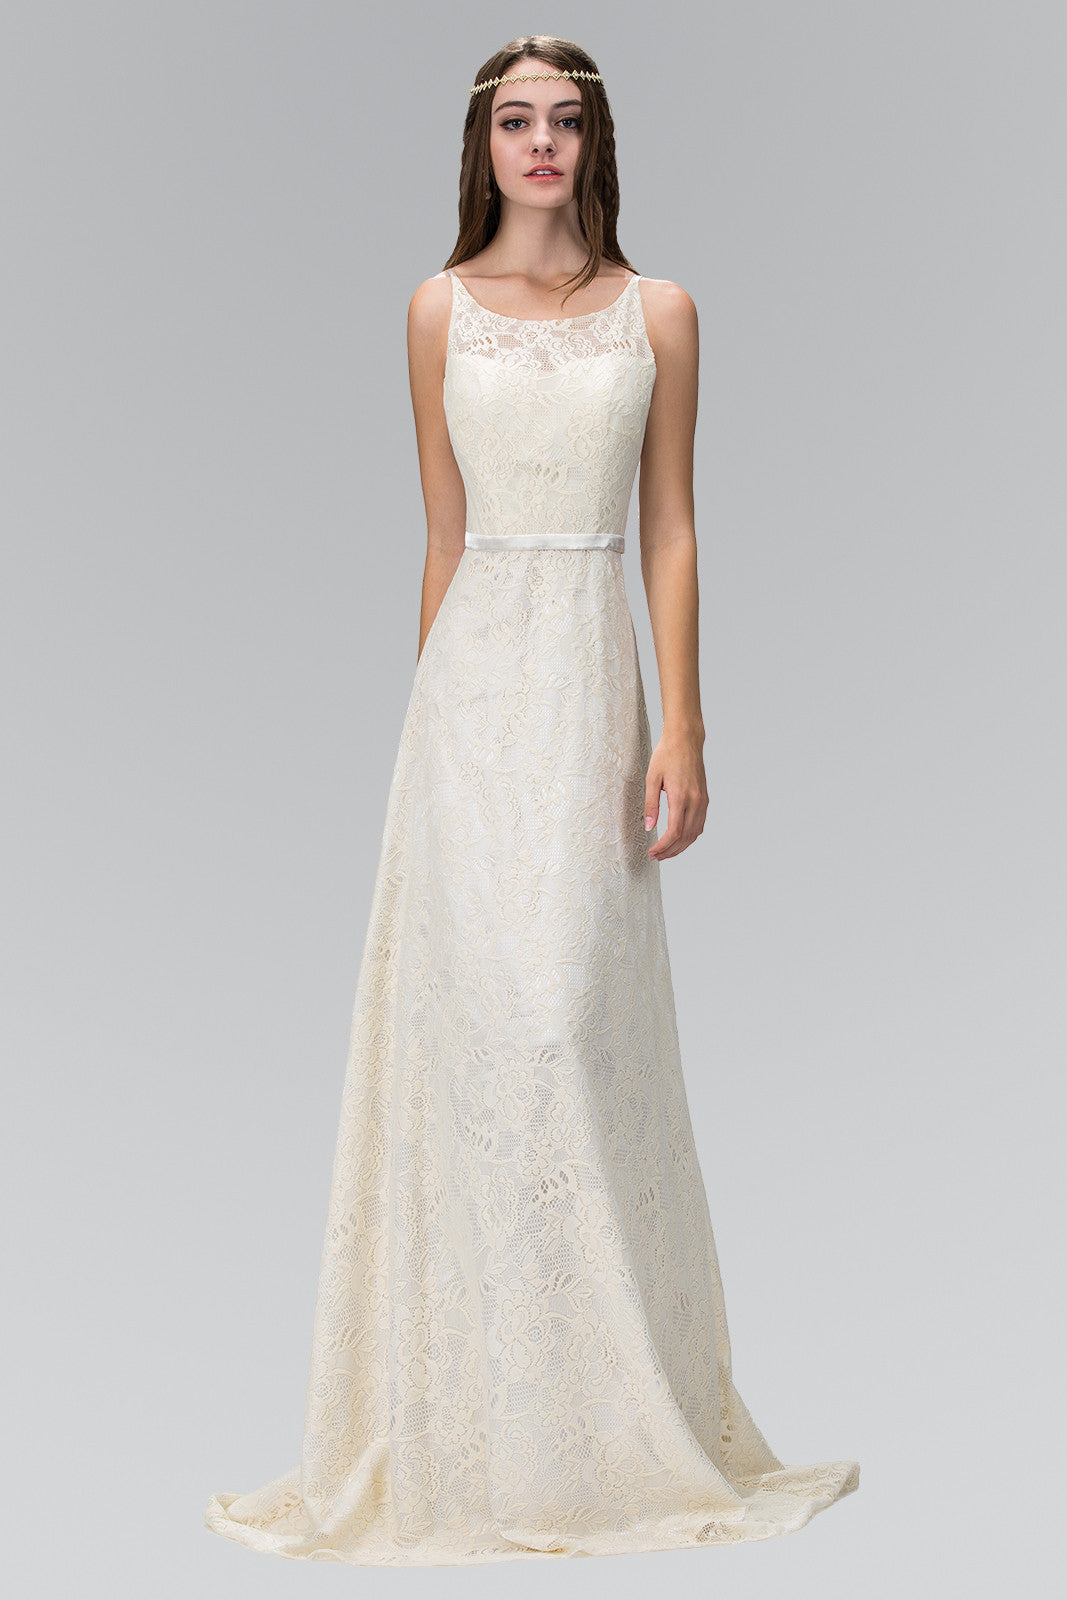 Lovely scoop neckline lace bridesmaid dress gl2170 simply fab dress lovely scoop neckline lace bridesmaid dress gl2170 simply fab dress ombrellifo Images